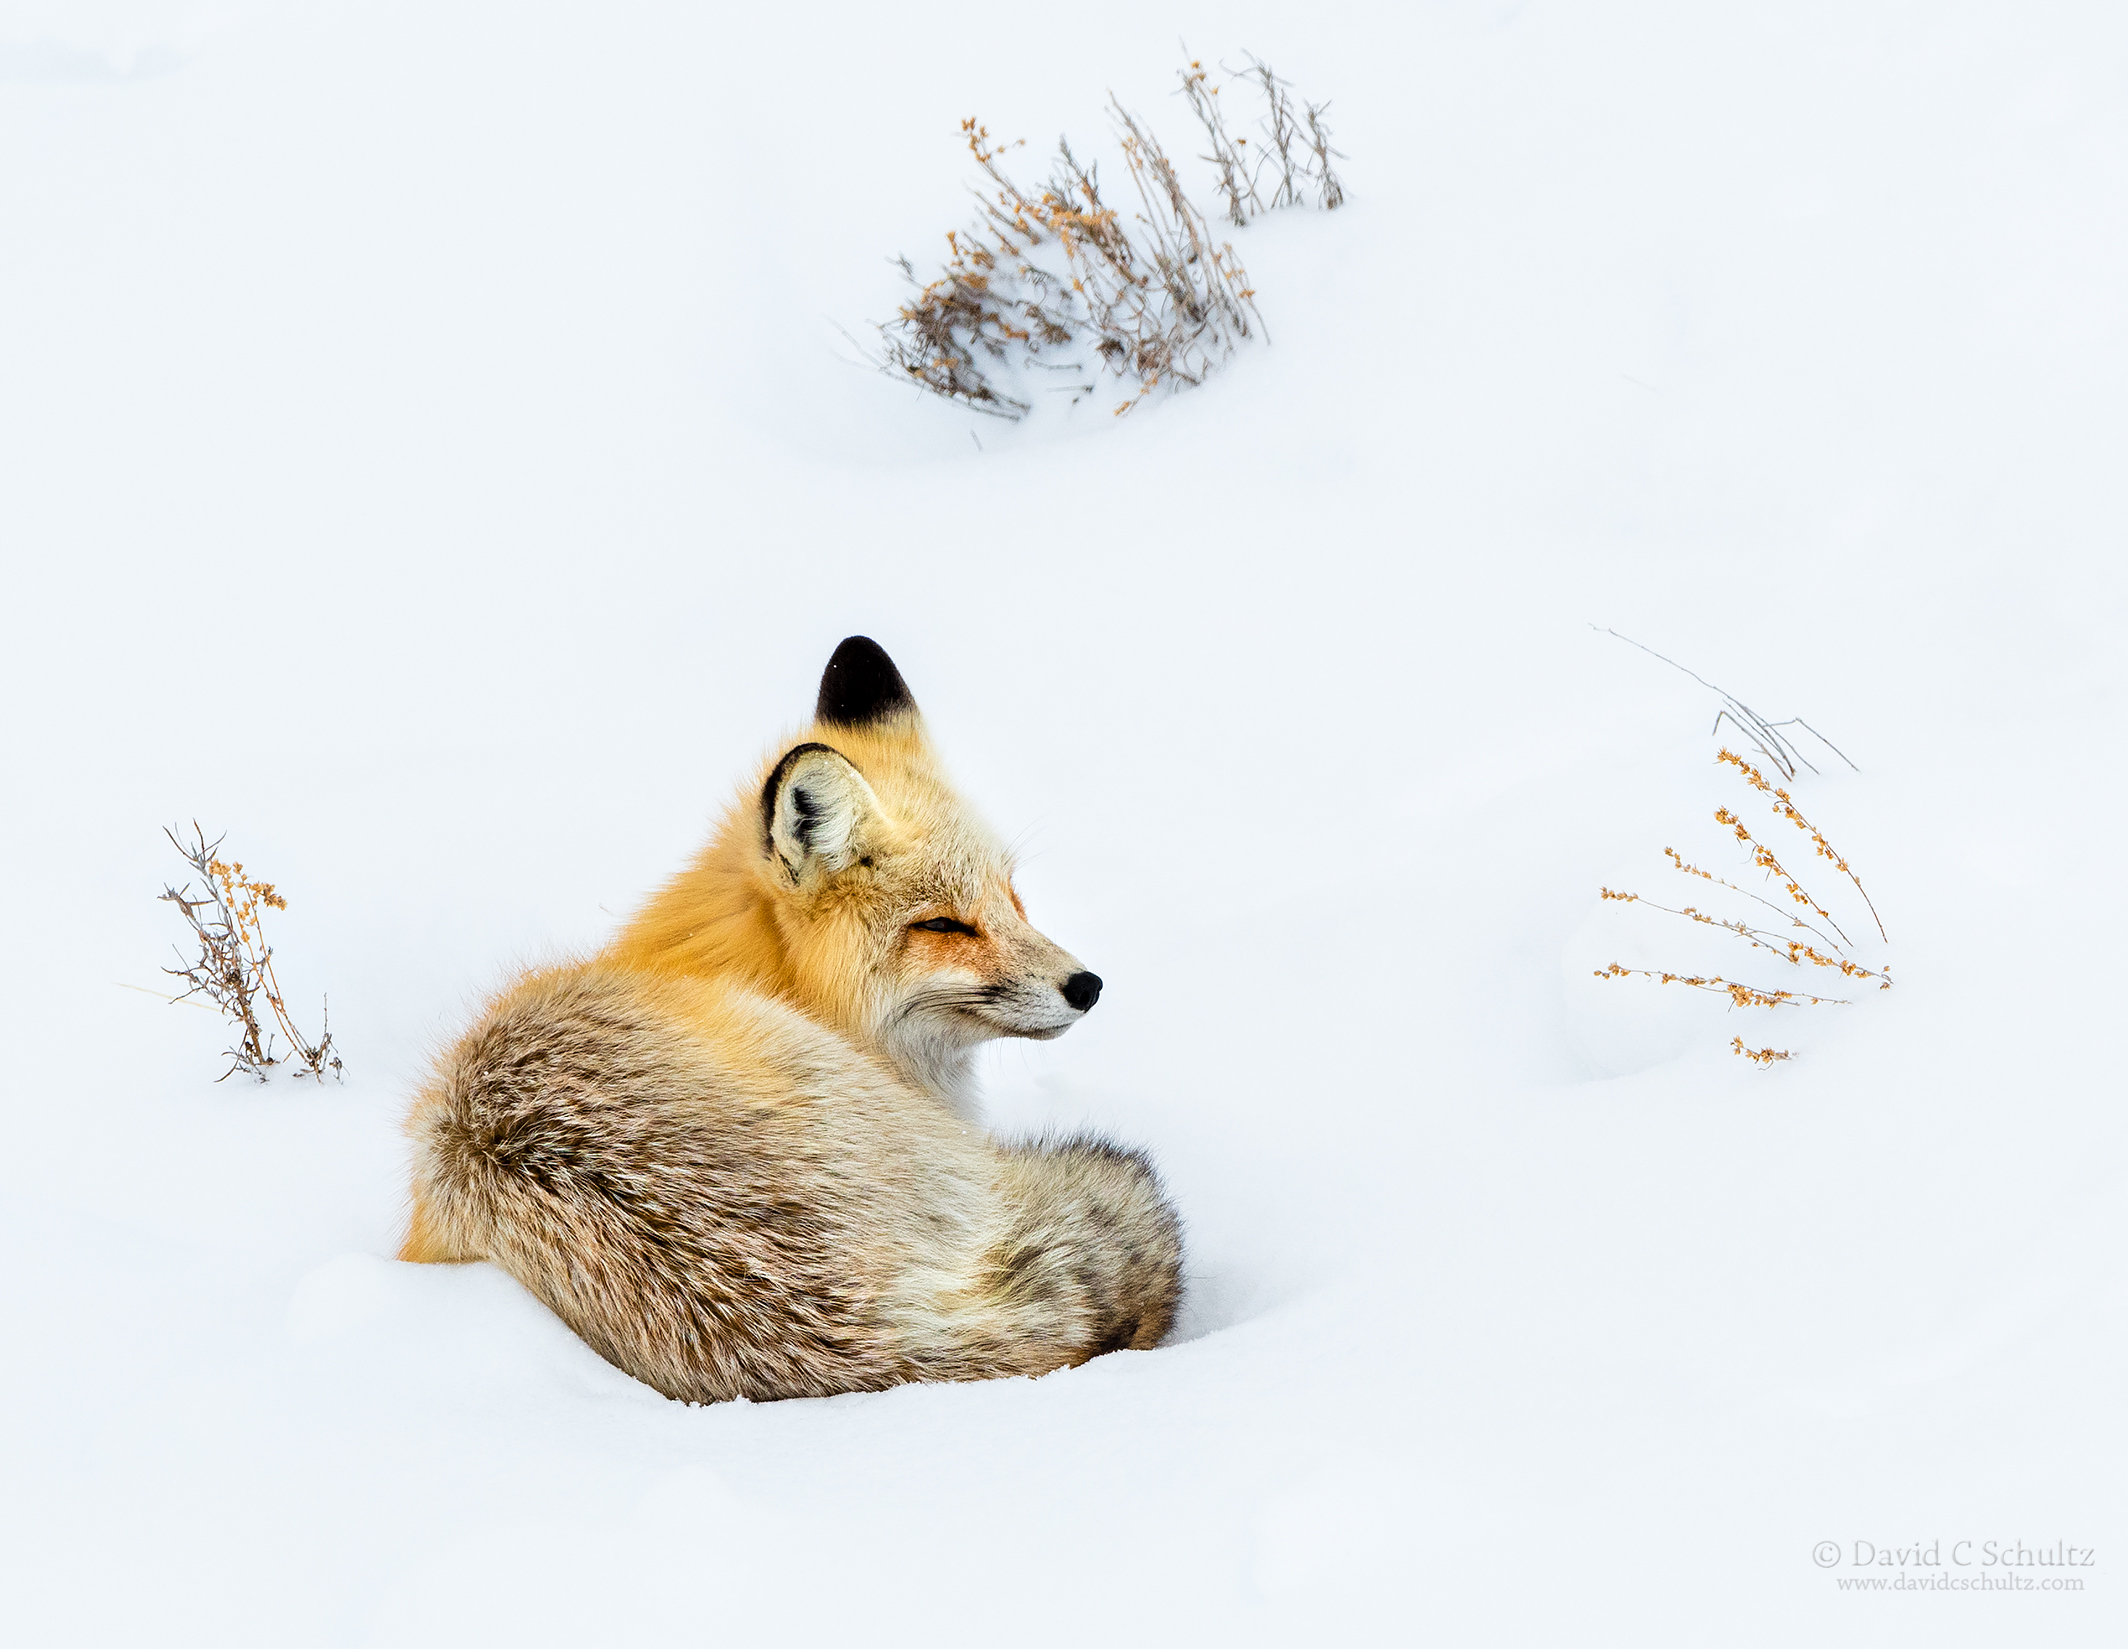 Red fox in Yellowstone- Image #161-9006